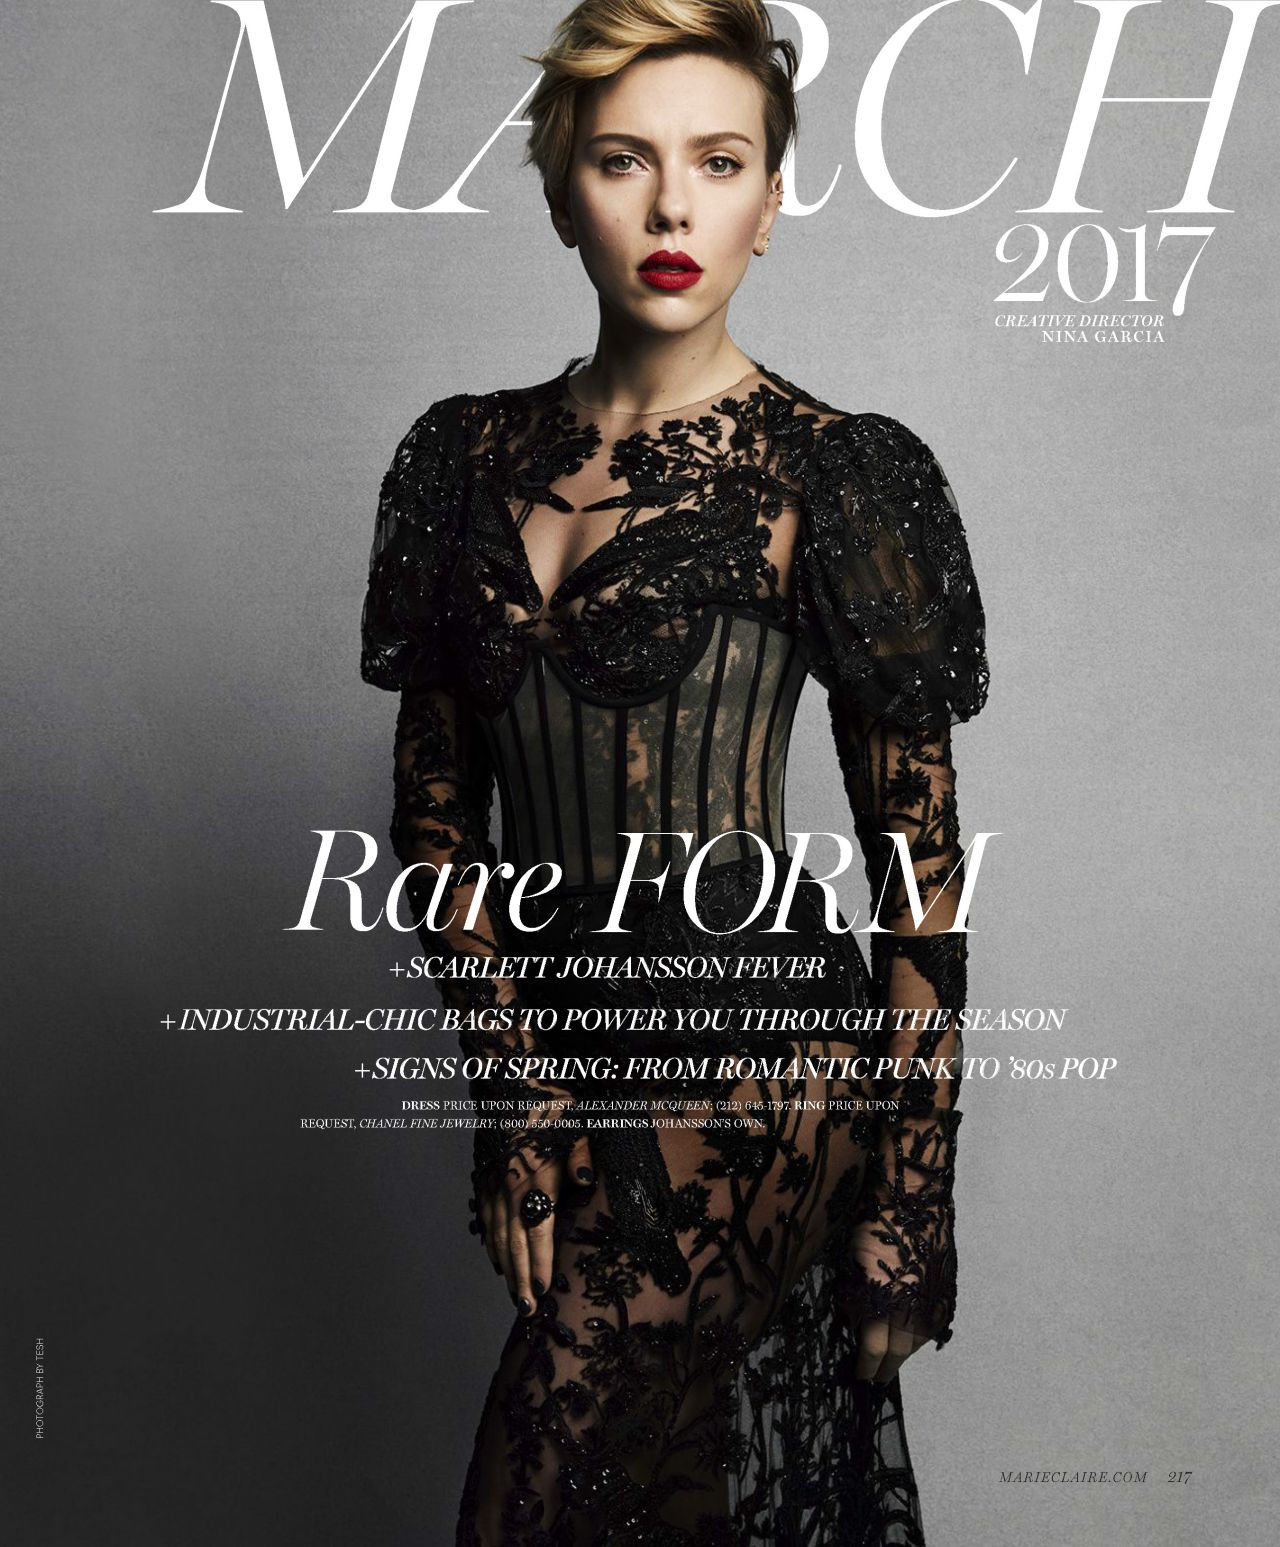 2017: Marie Claire (US) March 2017 Issue